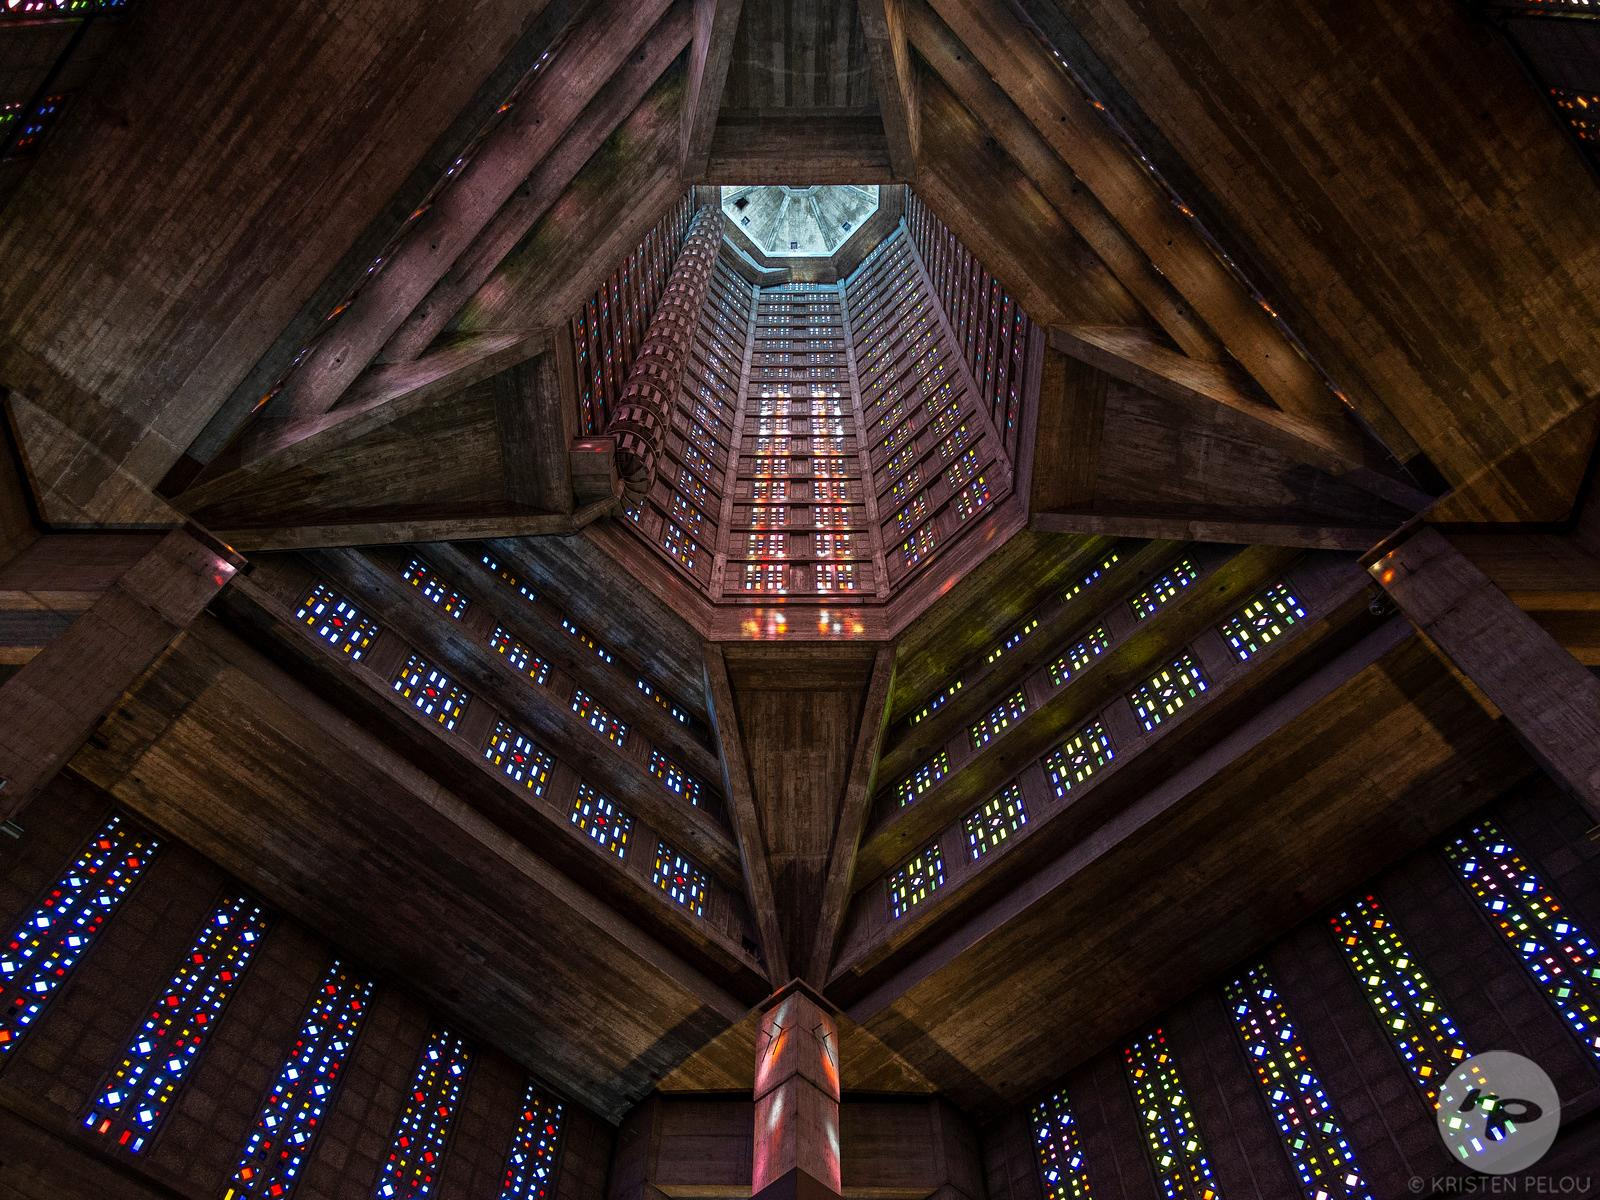 Architecture photographer Paris - SAINT JOSEPH CHURCH IN LE HAVRE